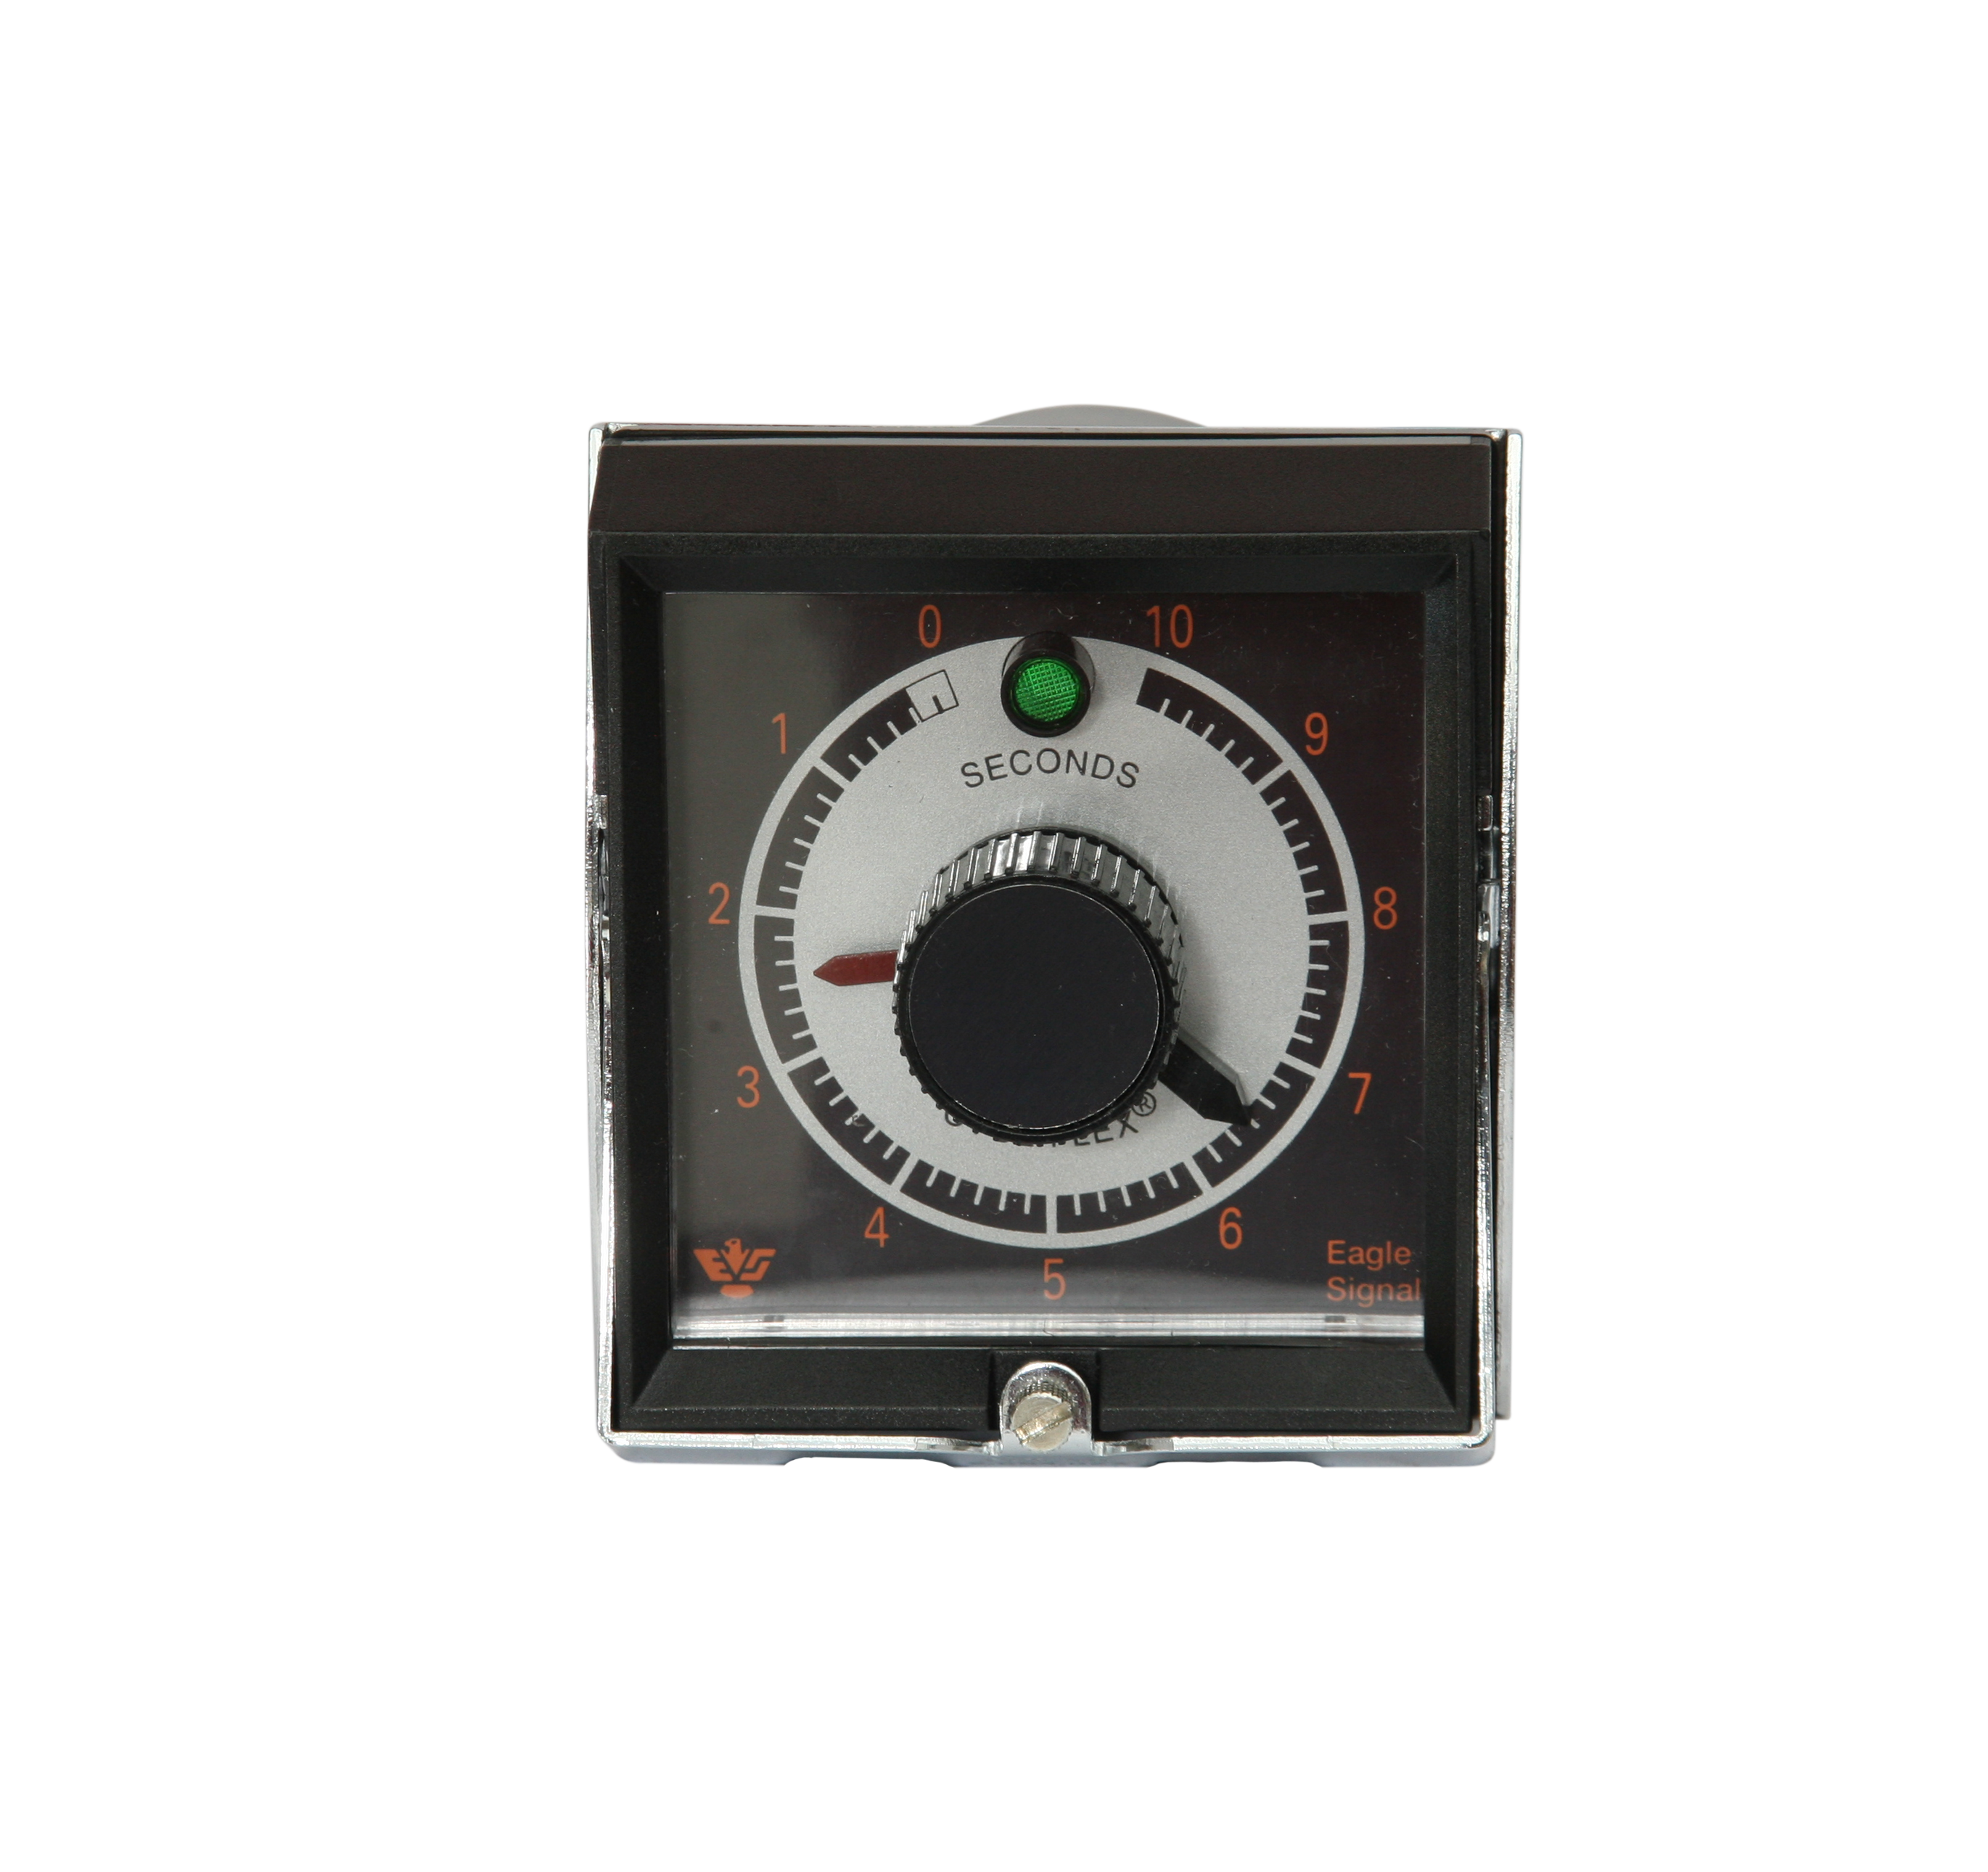 eagle signal electro mechanical timers hp5 cycle flex reset timer. Black Bedroom Furniture Sets. Home Design Ideas